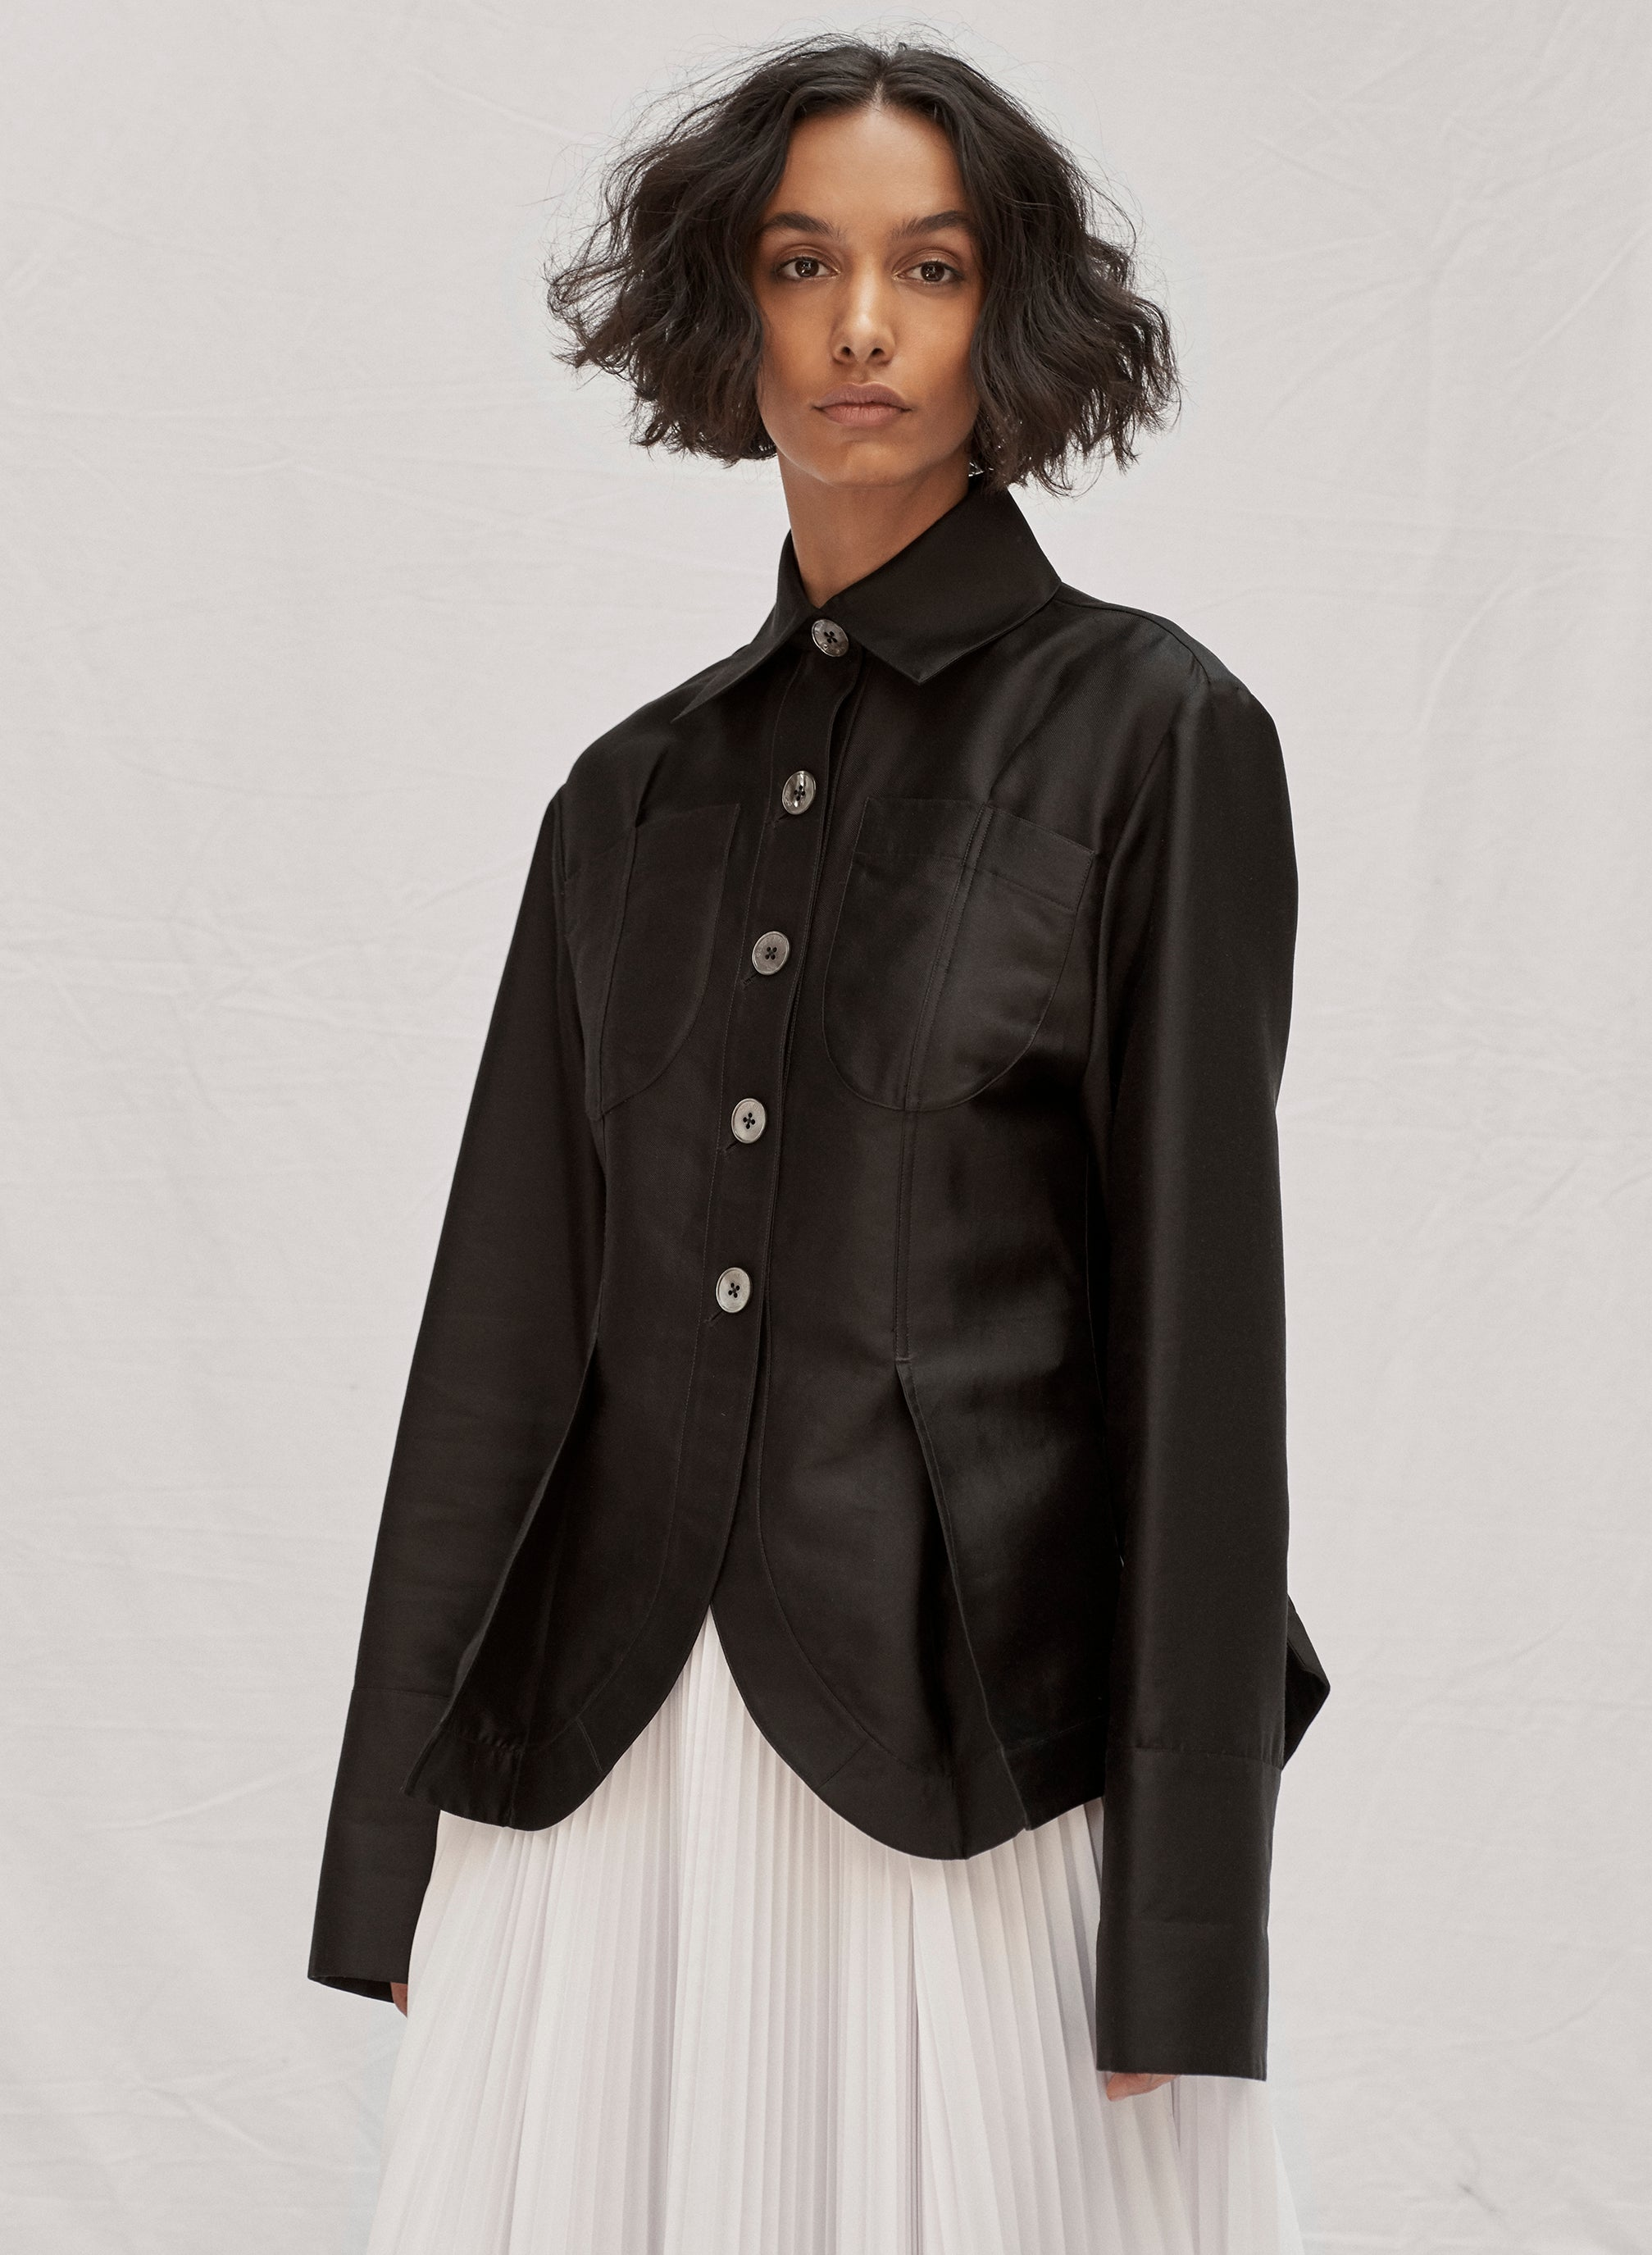 claudia li fall winter 2019 pintuck tailored relaxed fit shirt